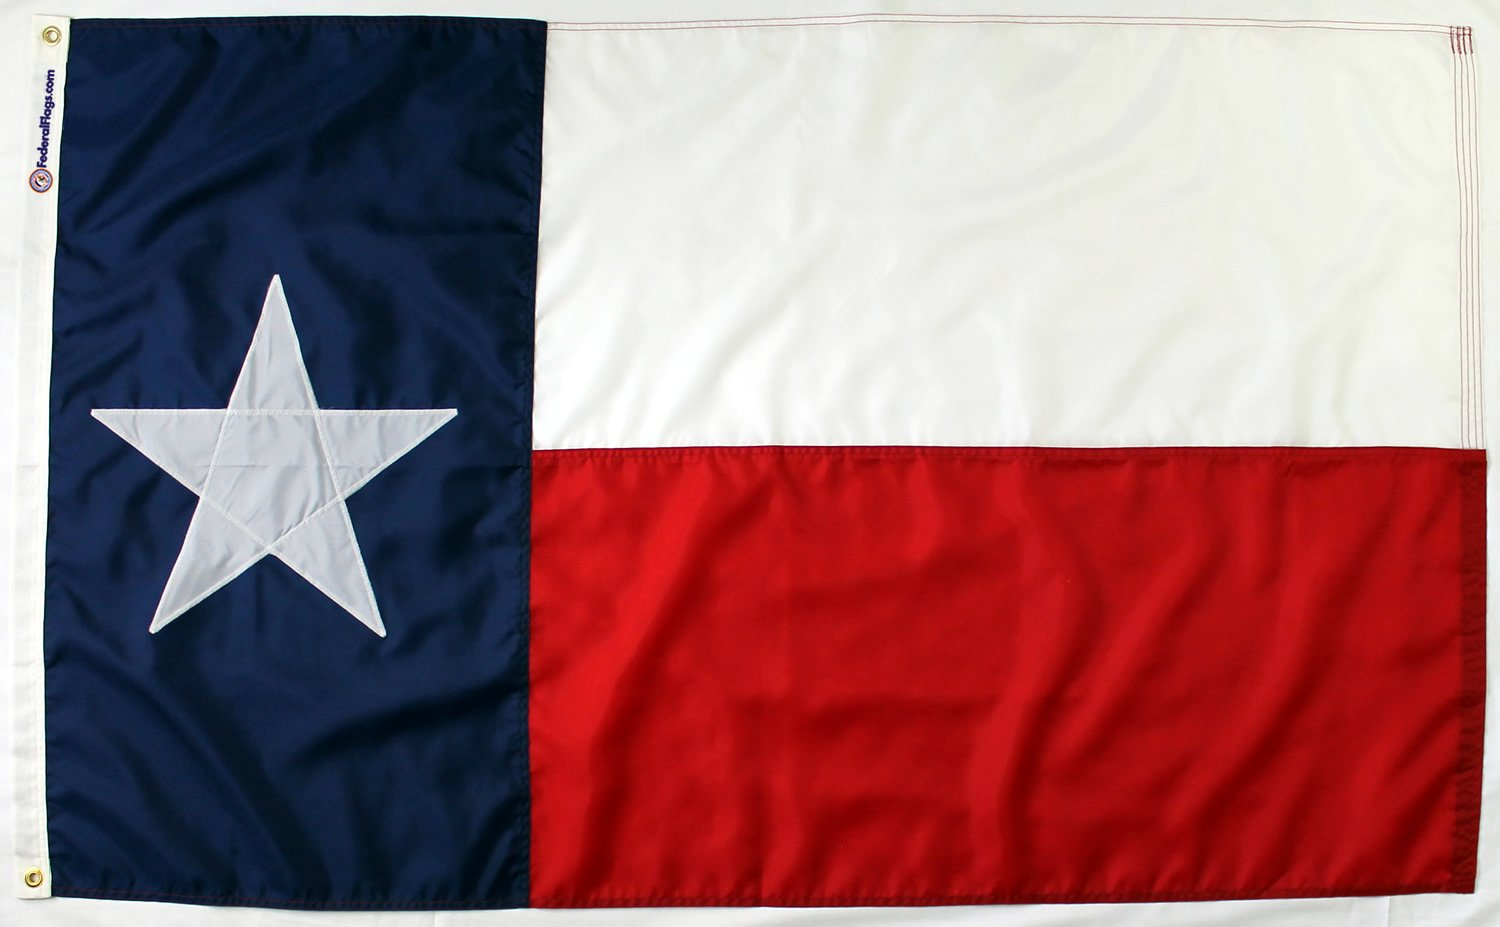 State of Texas Flag - Fully Sewn Nylon (6'x10') by Federal Flags